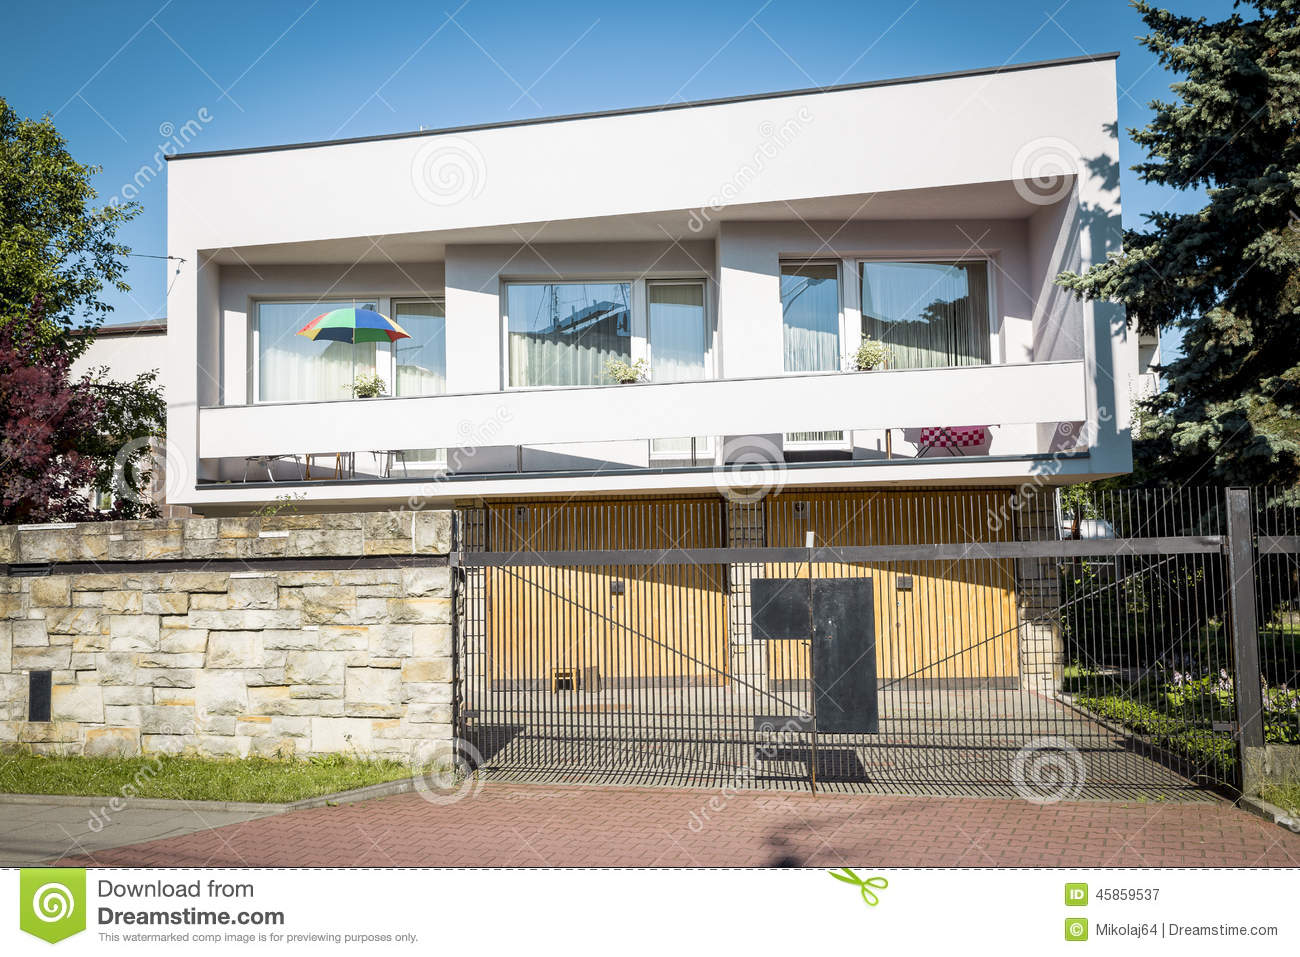 Semi Detached House In Modern Style Stock Photo Image